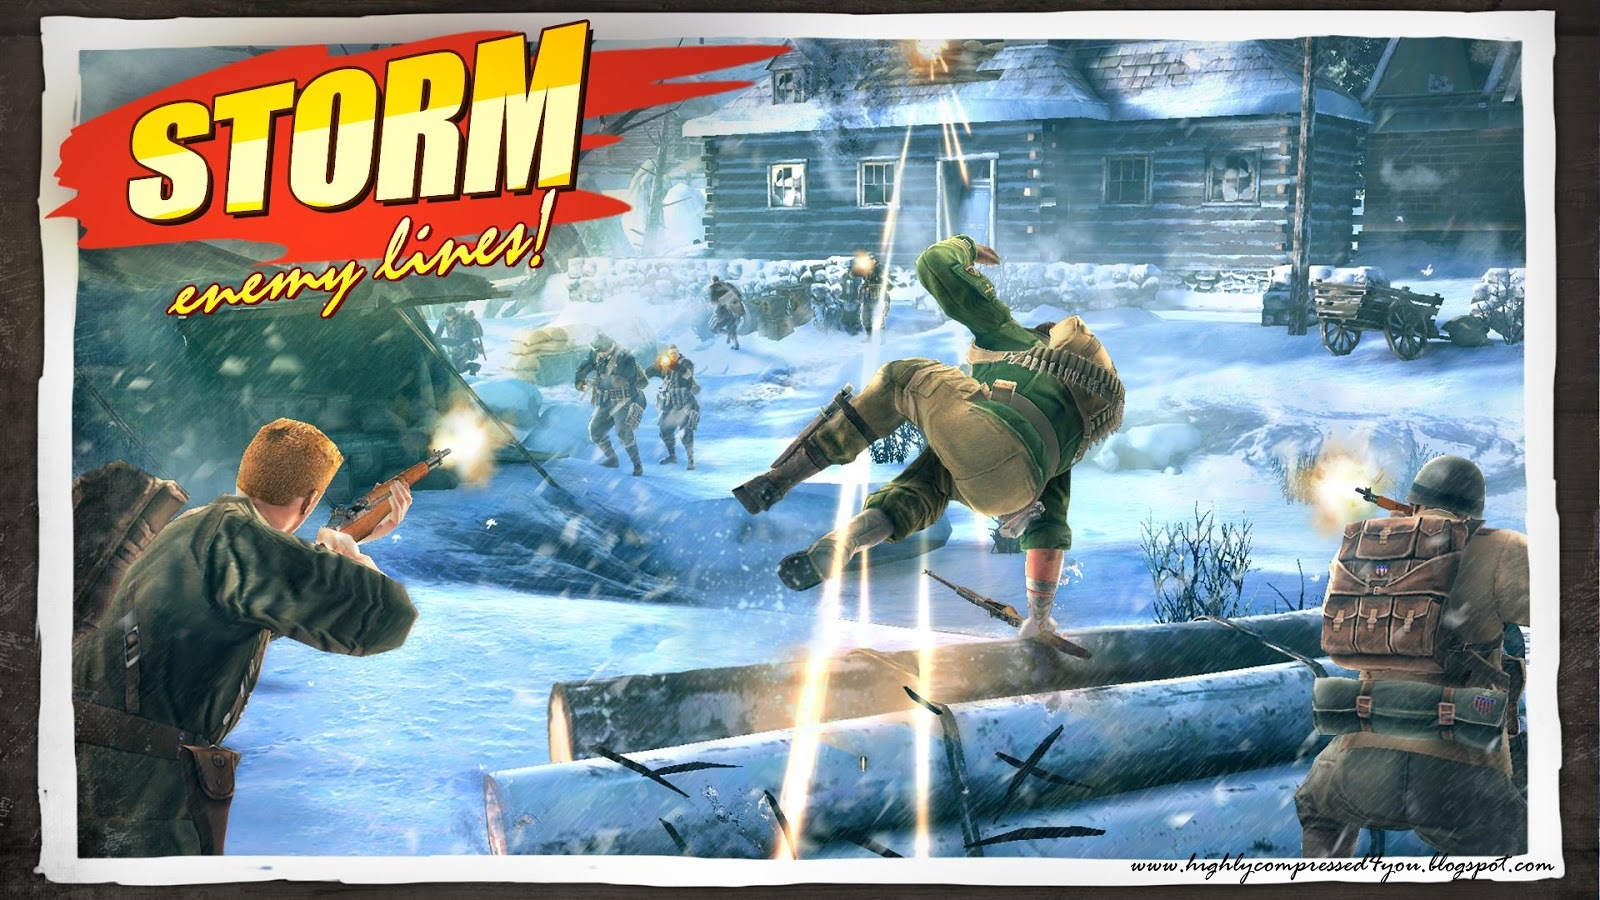 Brothers In Arms 3 Apk+Data Highly Compressed In 464 MB Only